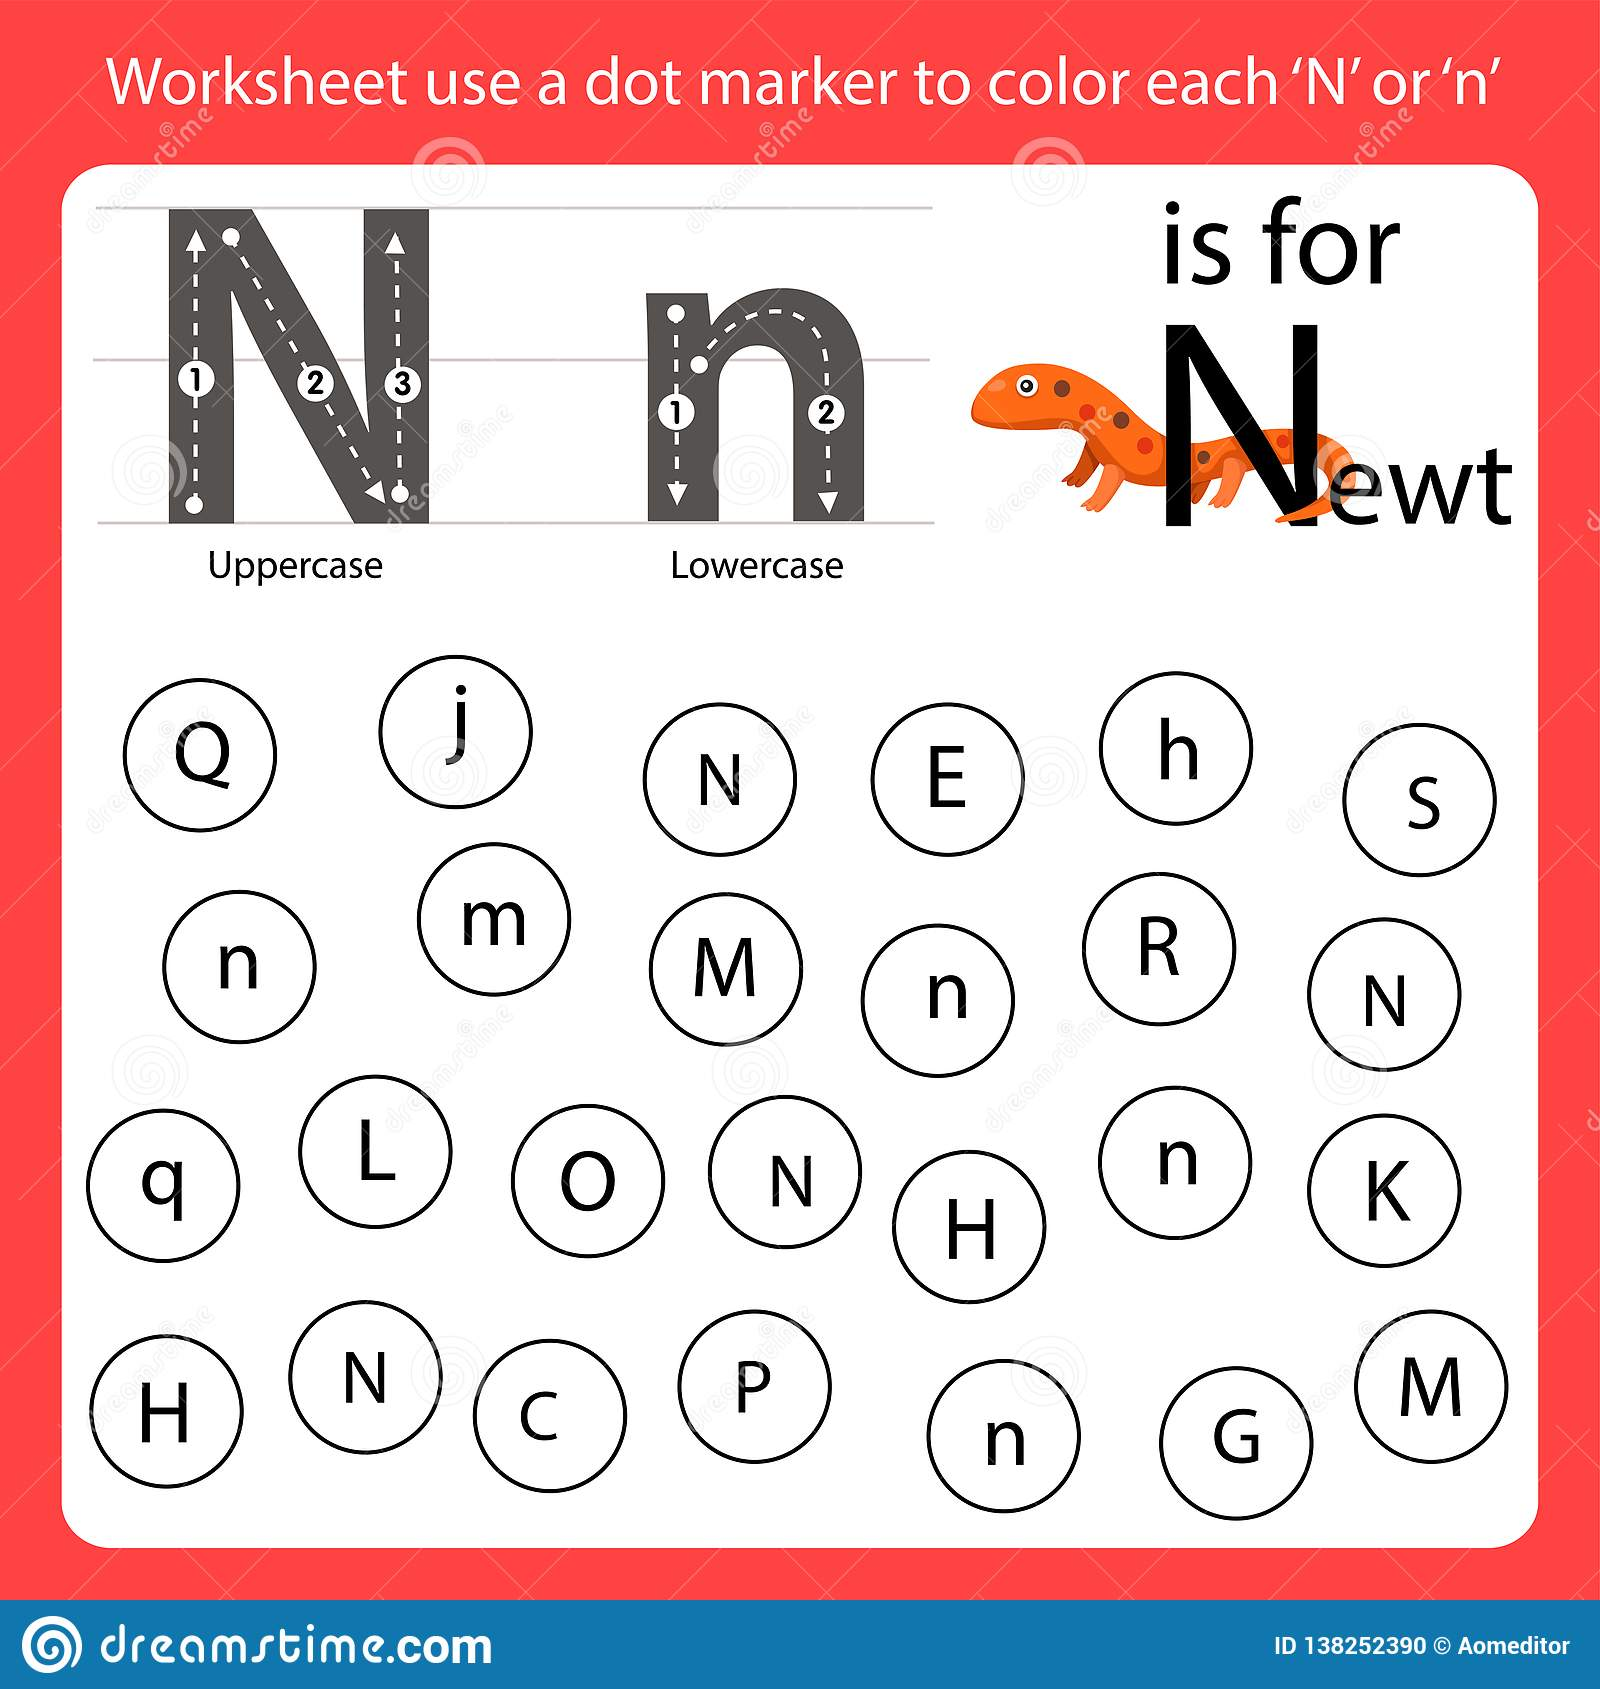 Find The Letter Worksheet Use A Dot Marker To Color Each N